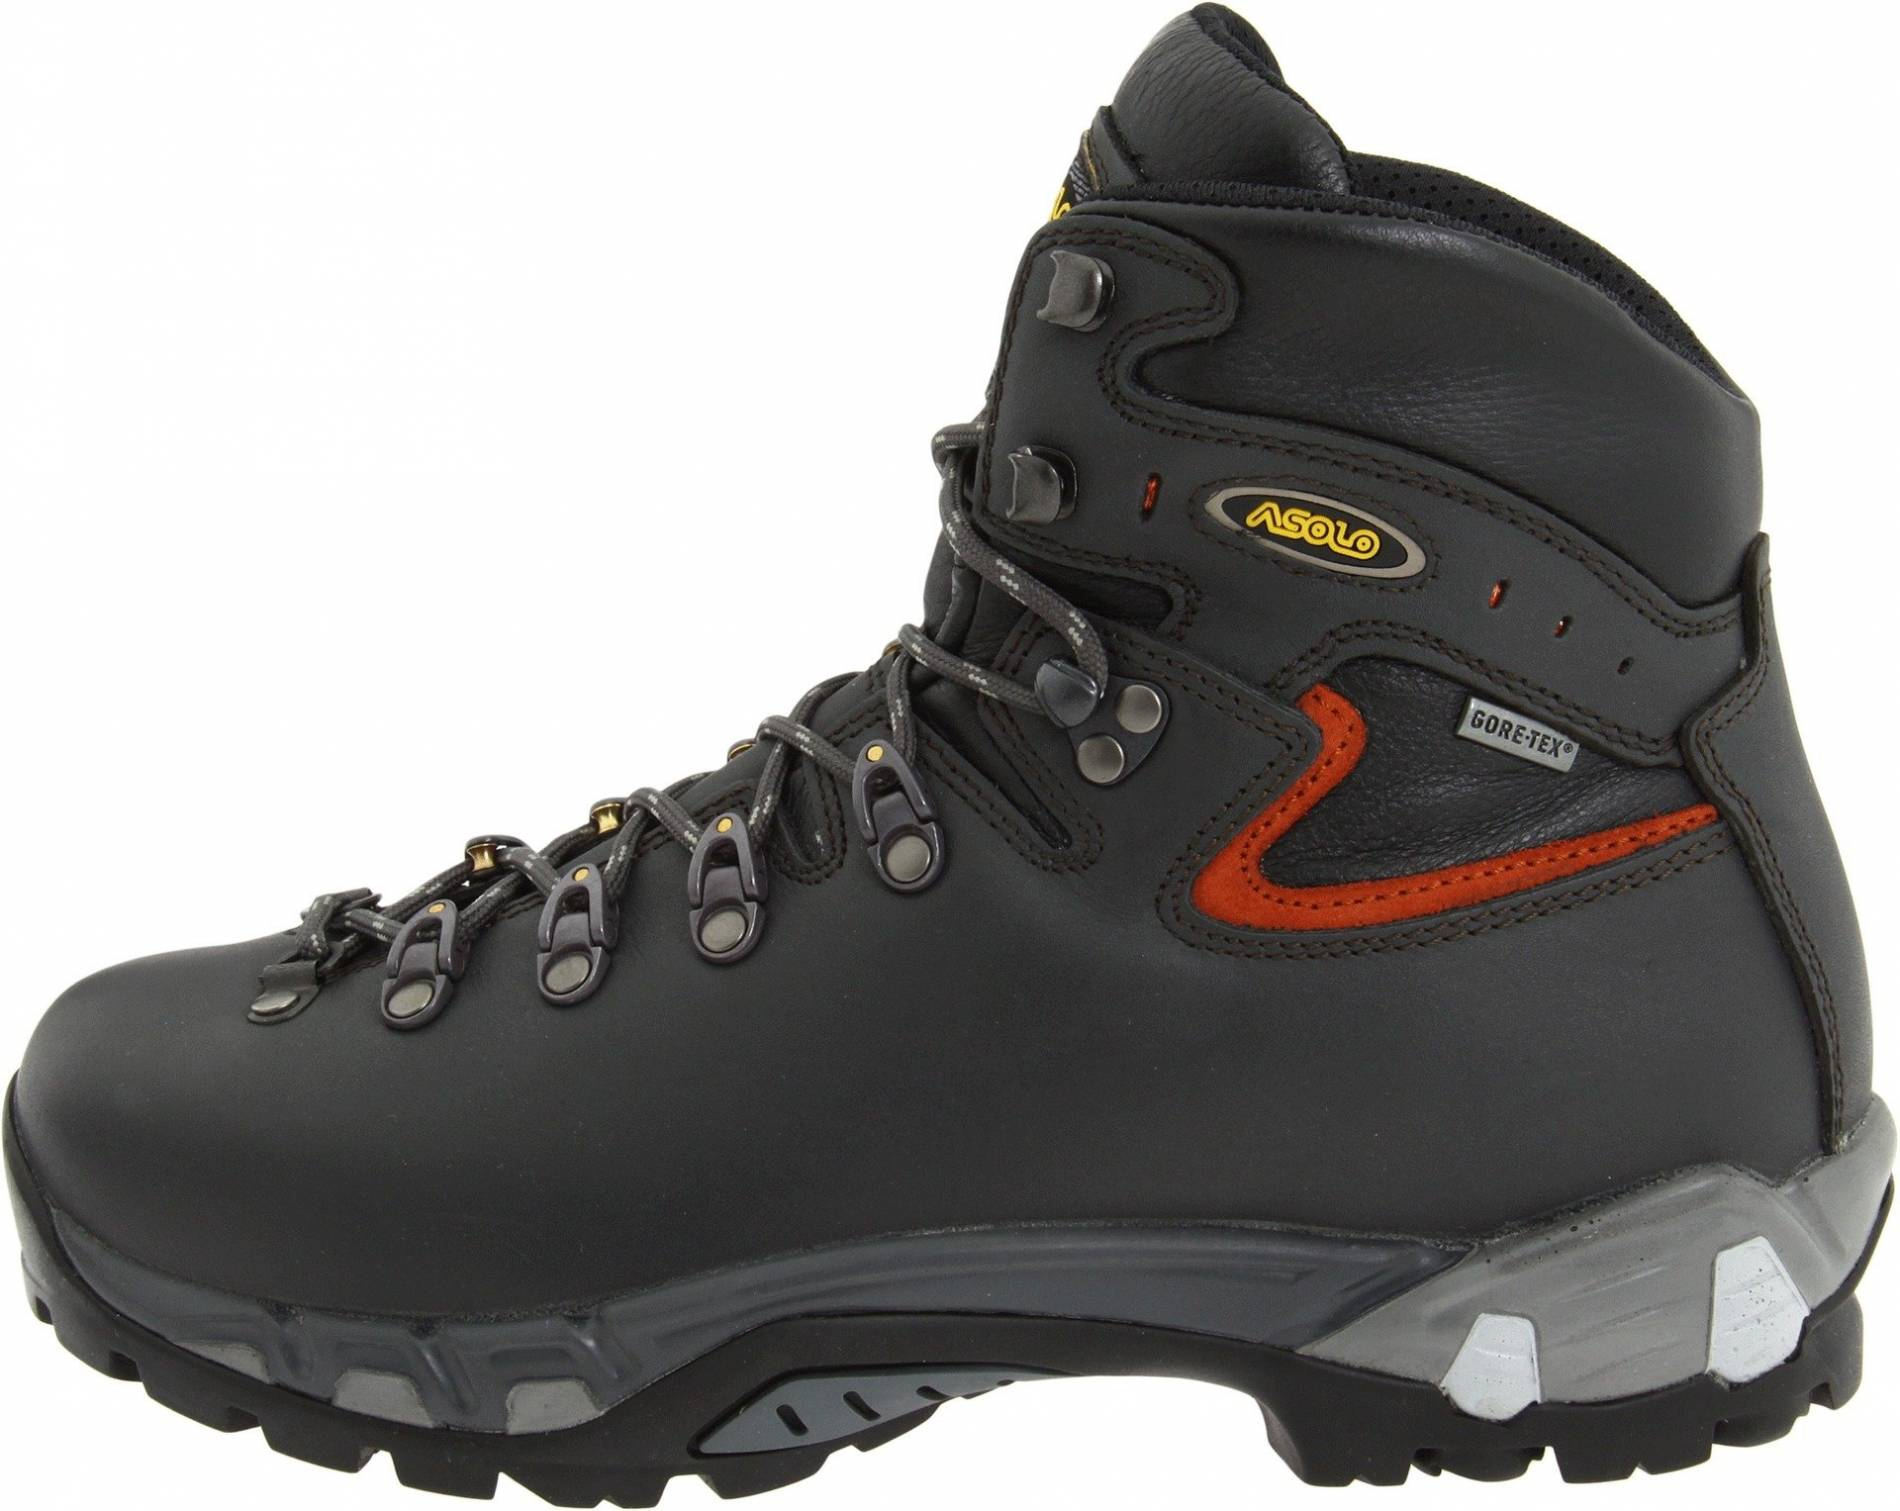 Save 17% on Asolo Leather Hiking Boots